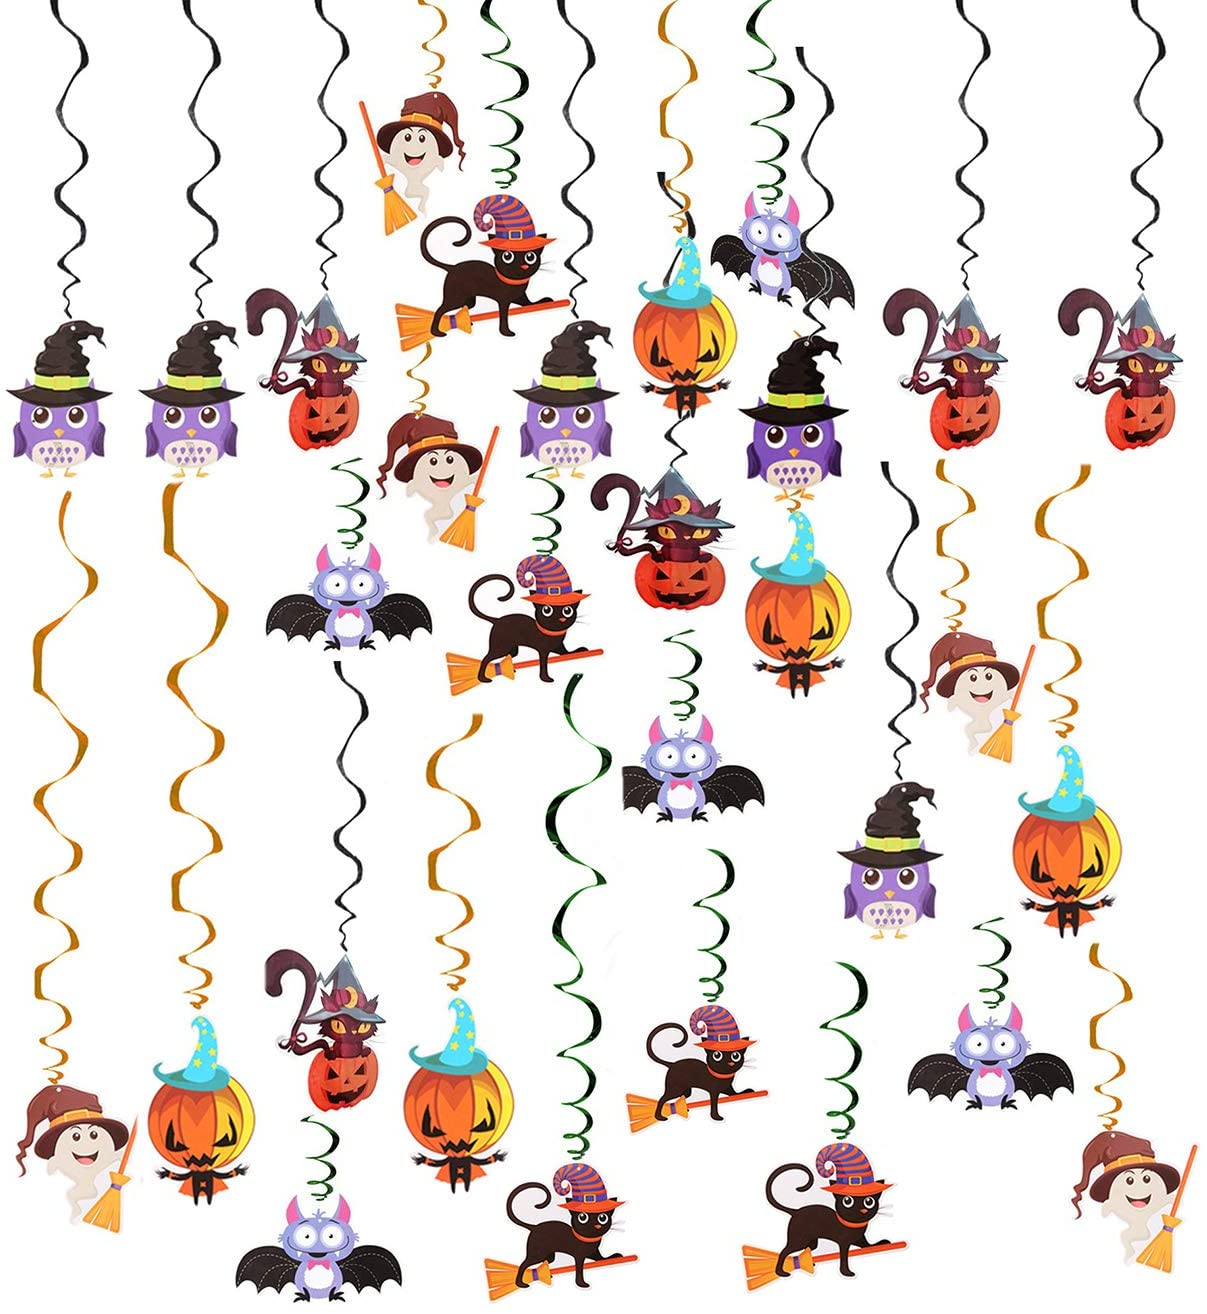 Fashionclubs Halloween Hanging Swirl Decorations, 30pcs Halloween Celling Hanging Swirl Yard Party Decorations Whirls Streamers Party Favor Supplies, Included Bats, Cat, Ghost, Pumpkin, Witch, Owl Cutouts